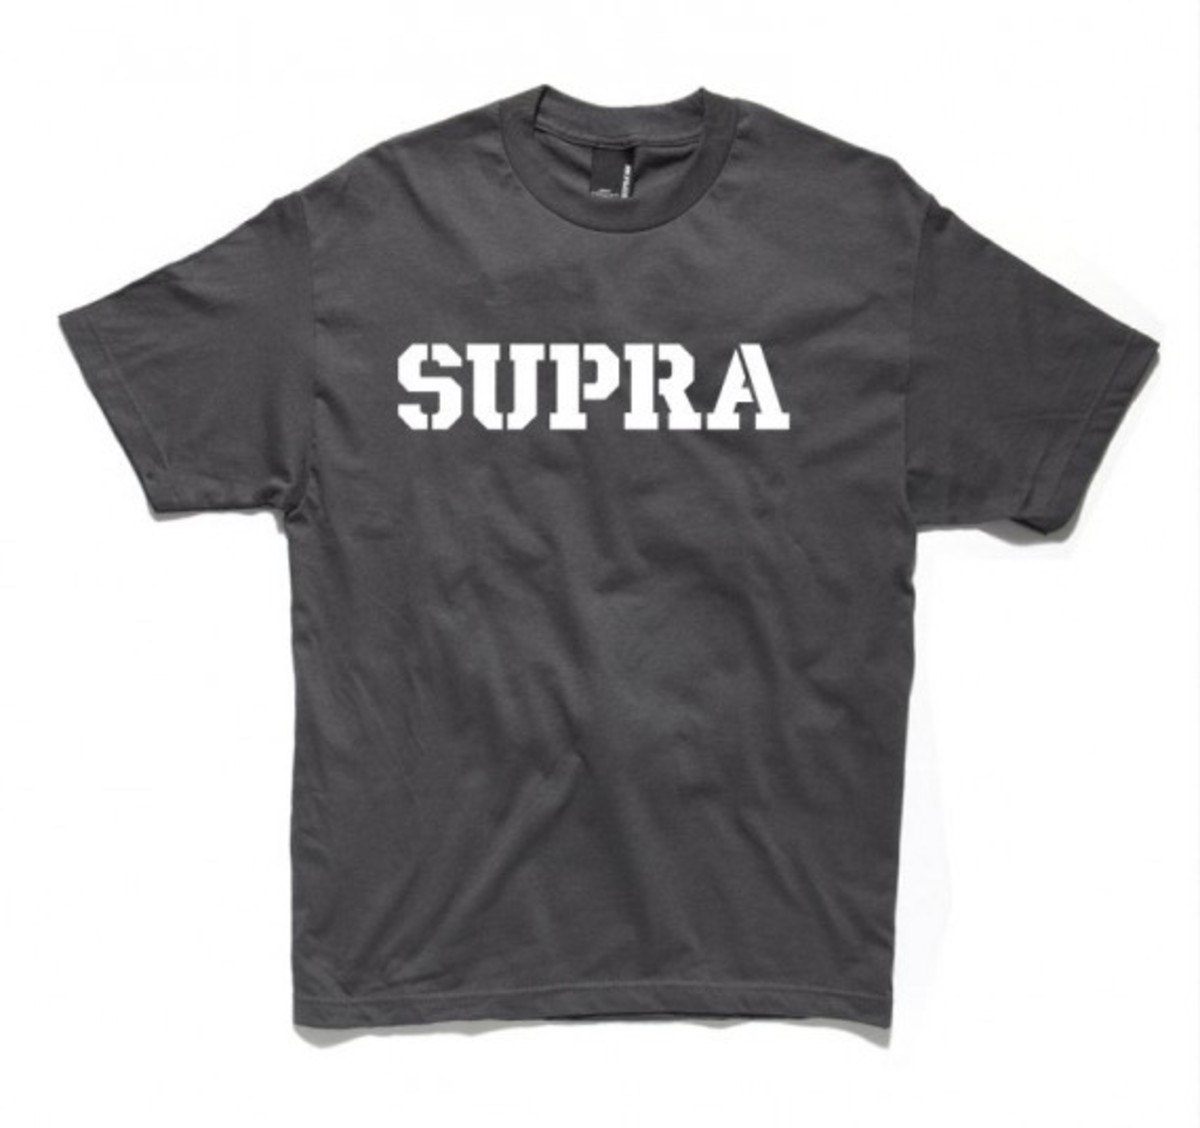 supra-mark-tshirt-04